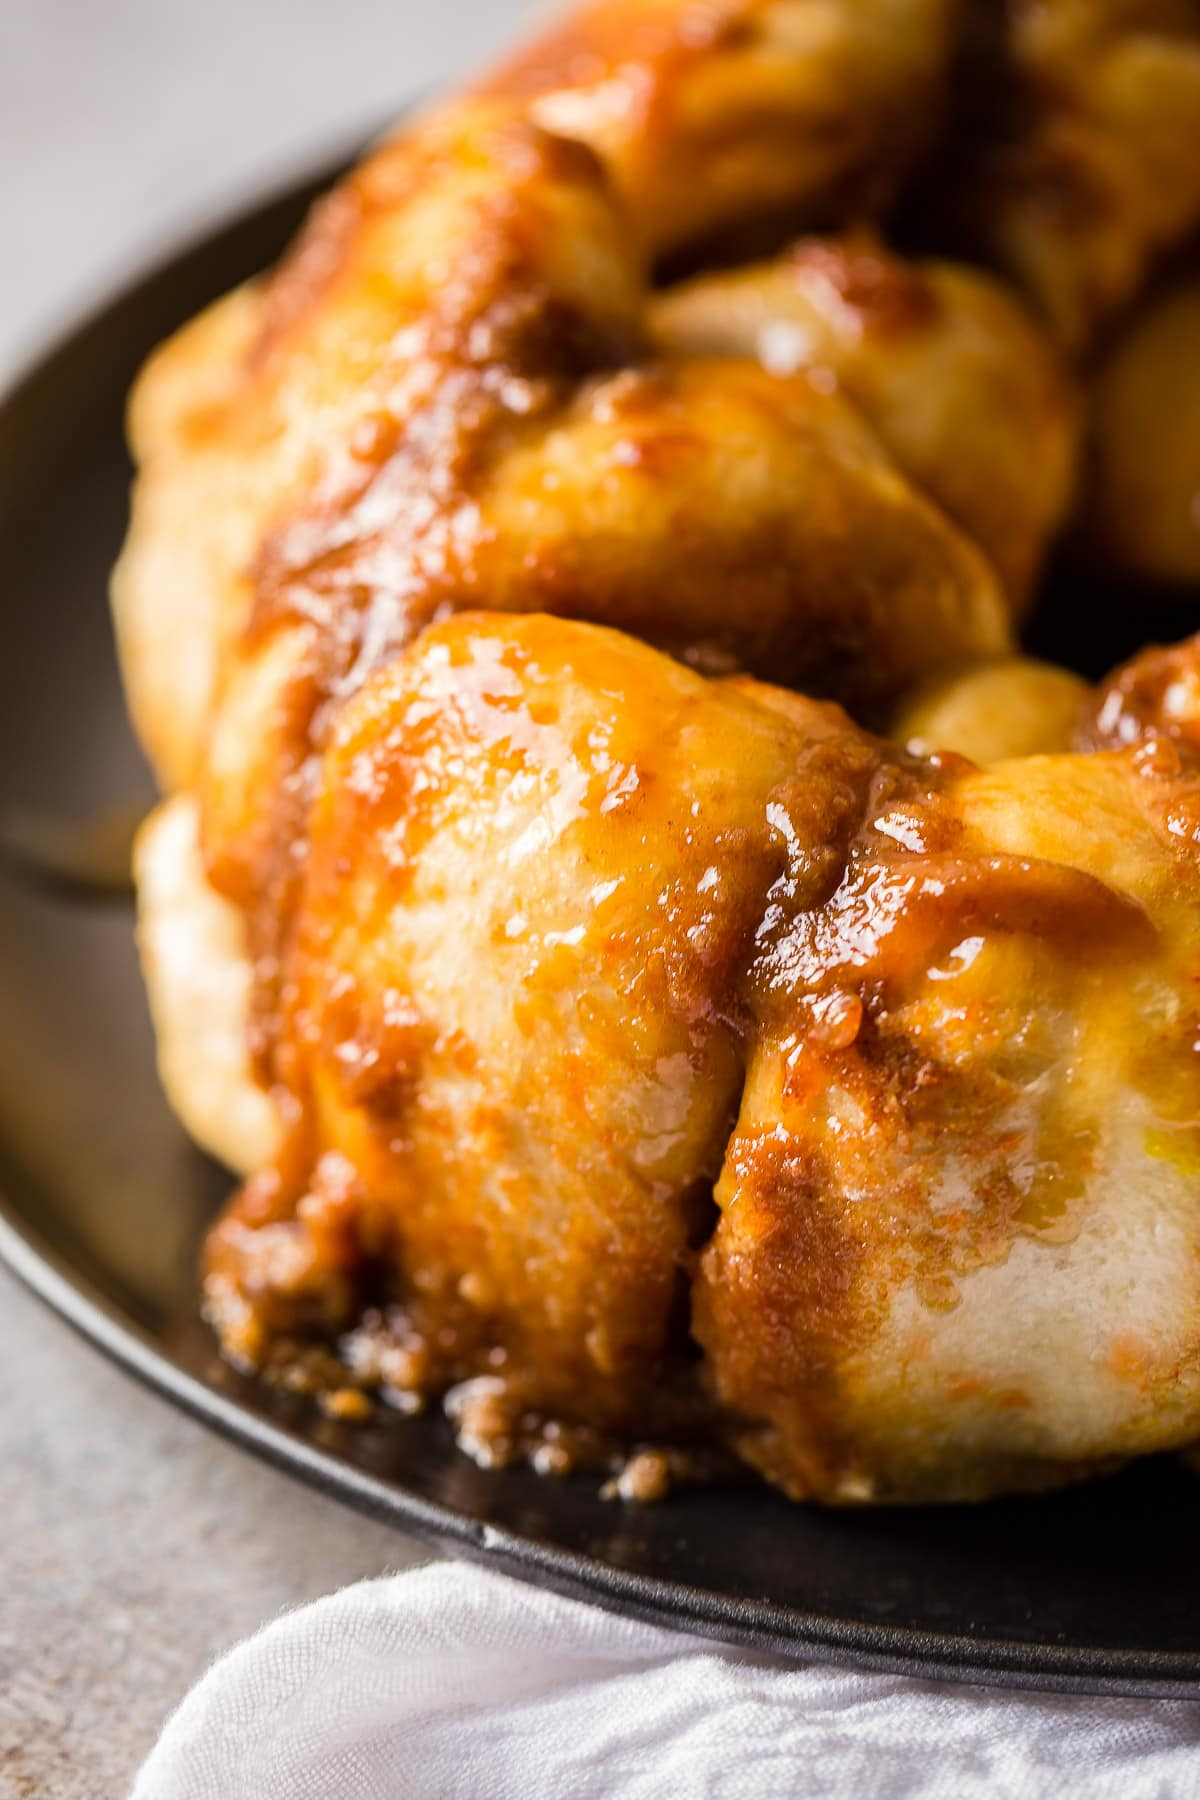 We have had this monkey bread my whole life! Just 4 ingredients and they are so soft and light. Seriously delicious! My mom's sticky buns are amazing!